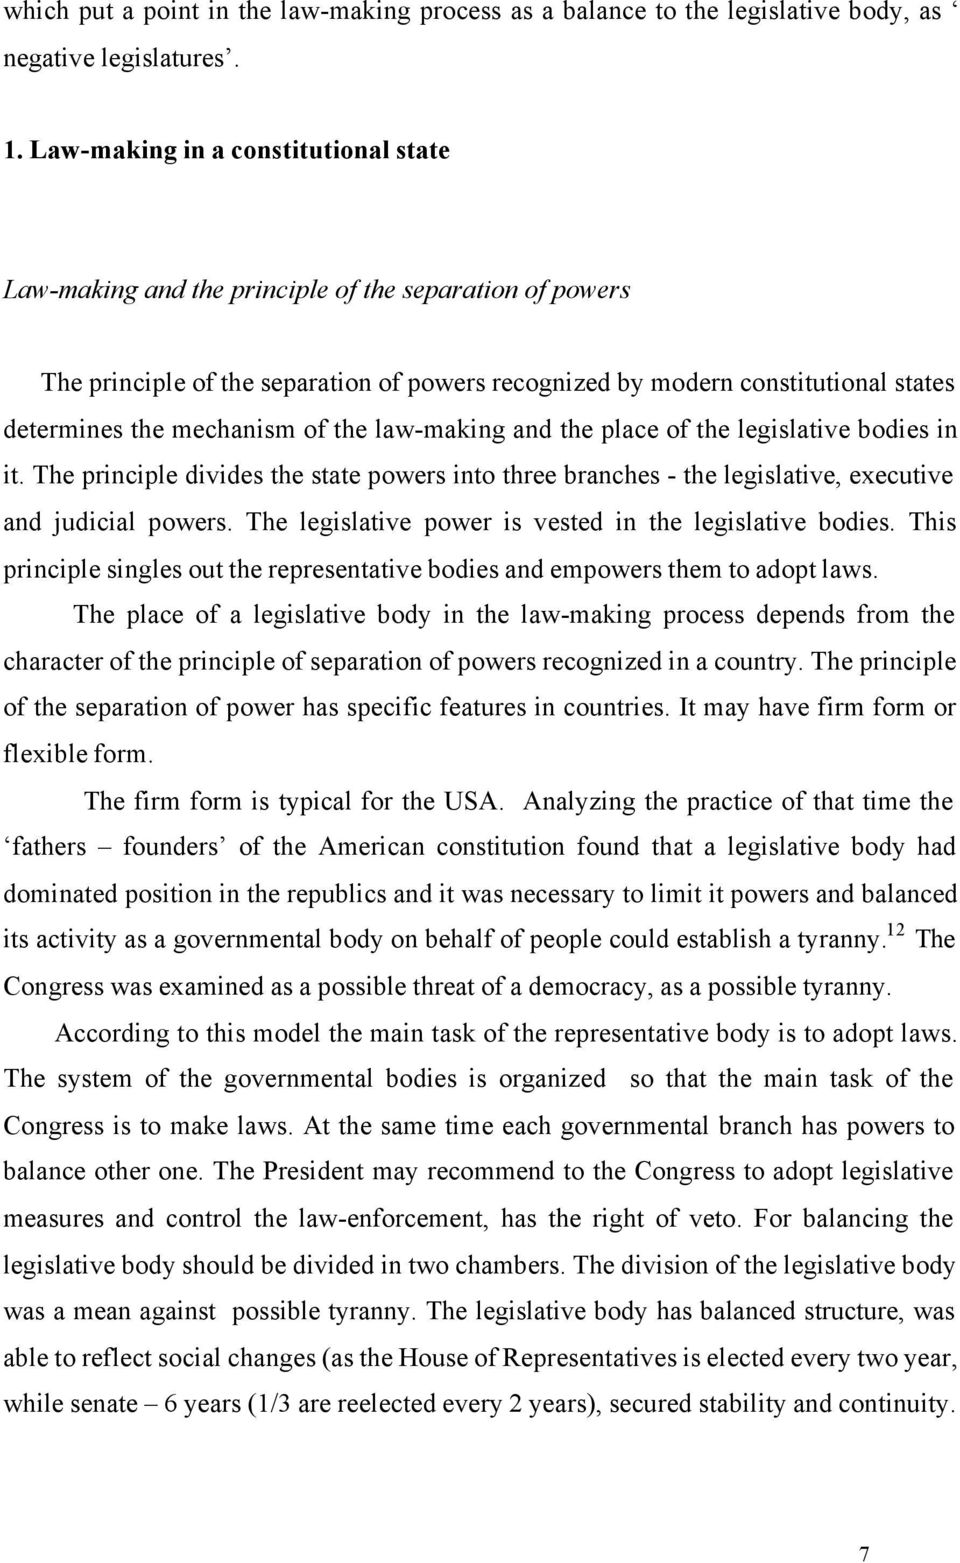 mechanism of the law-making and the place of the legislative bodies in it. The principle divides the state powers into three branches - the legislative, executive and judicial powers.